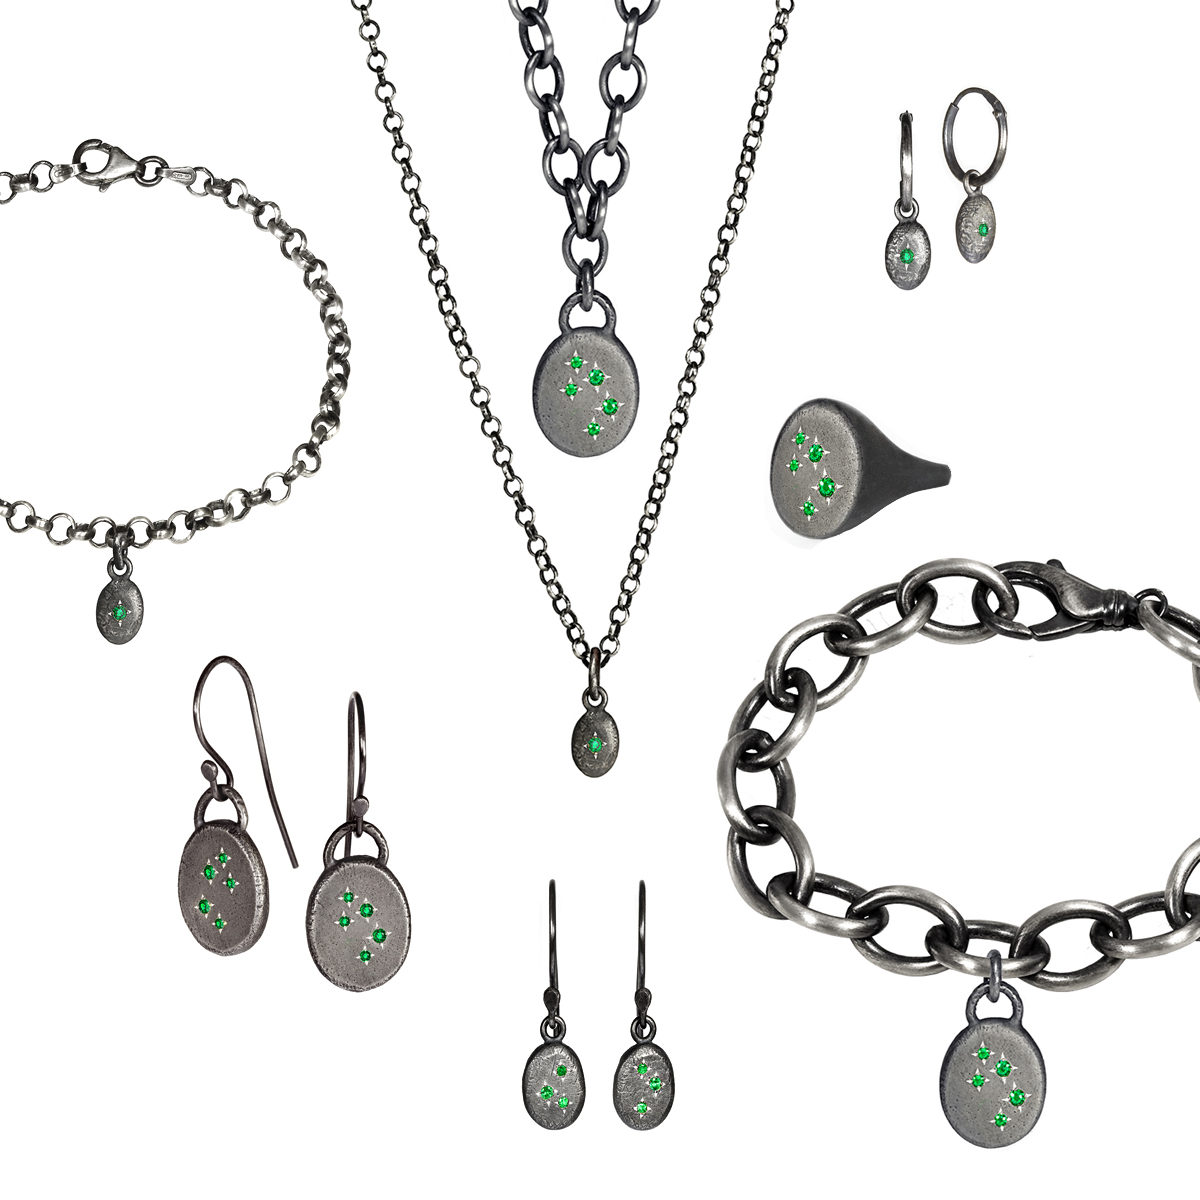 The ENVY jewellery collection, handcrafted by Julie Bégin using aged sterling silver and genuine emeralds.